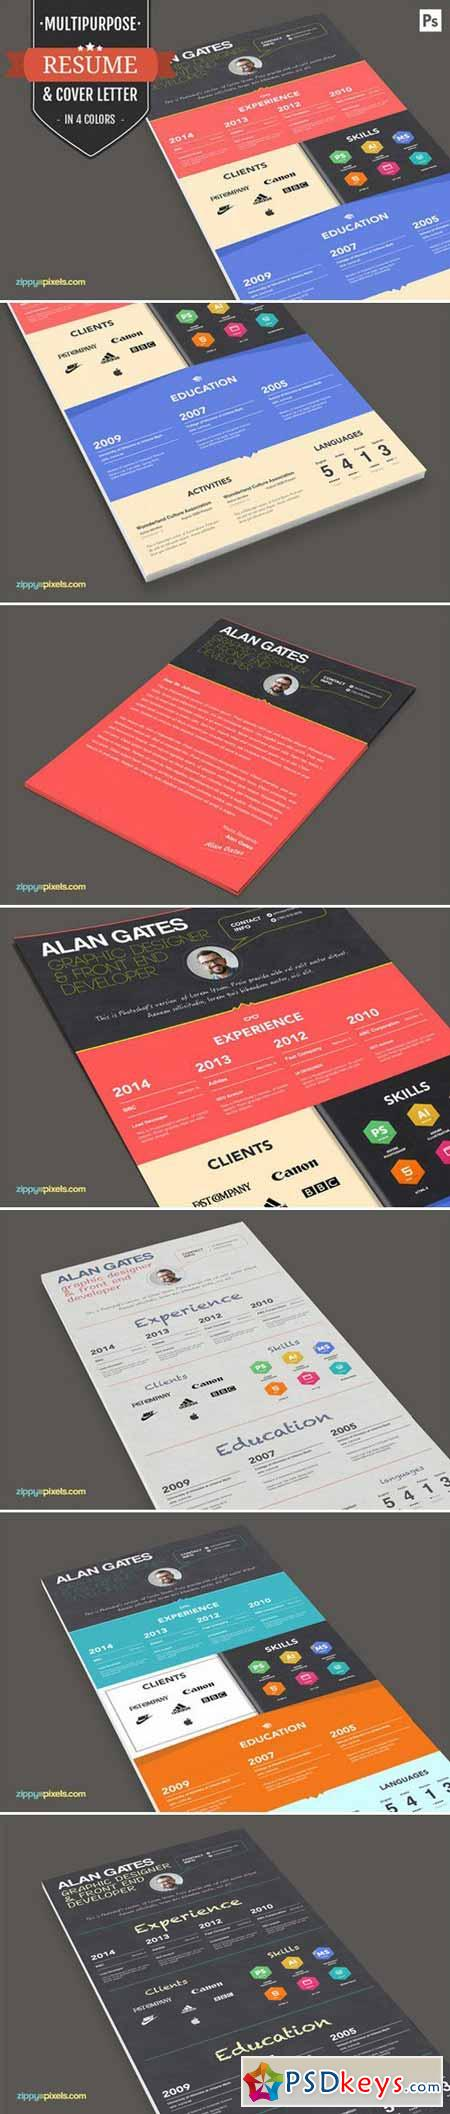 print ready resume cv template set 394588  u00bb free download photoshop vector stock image via